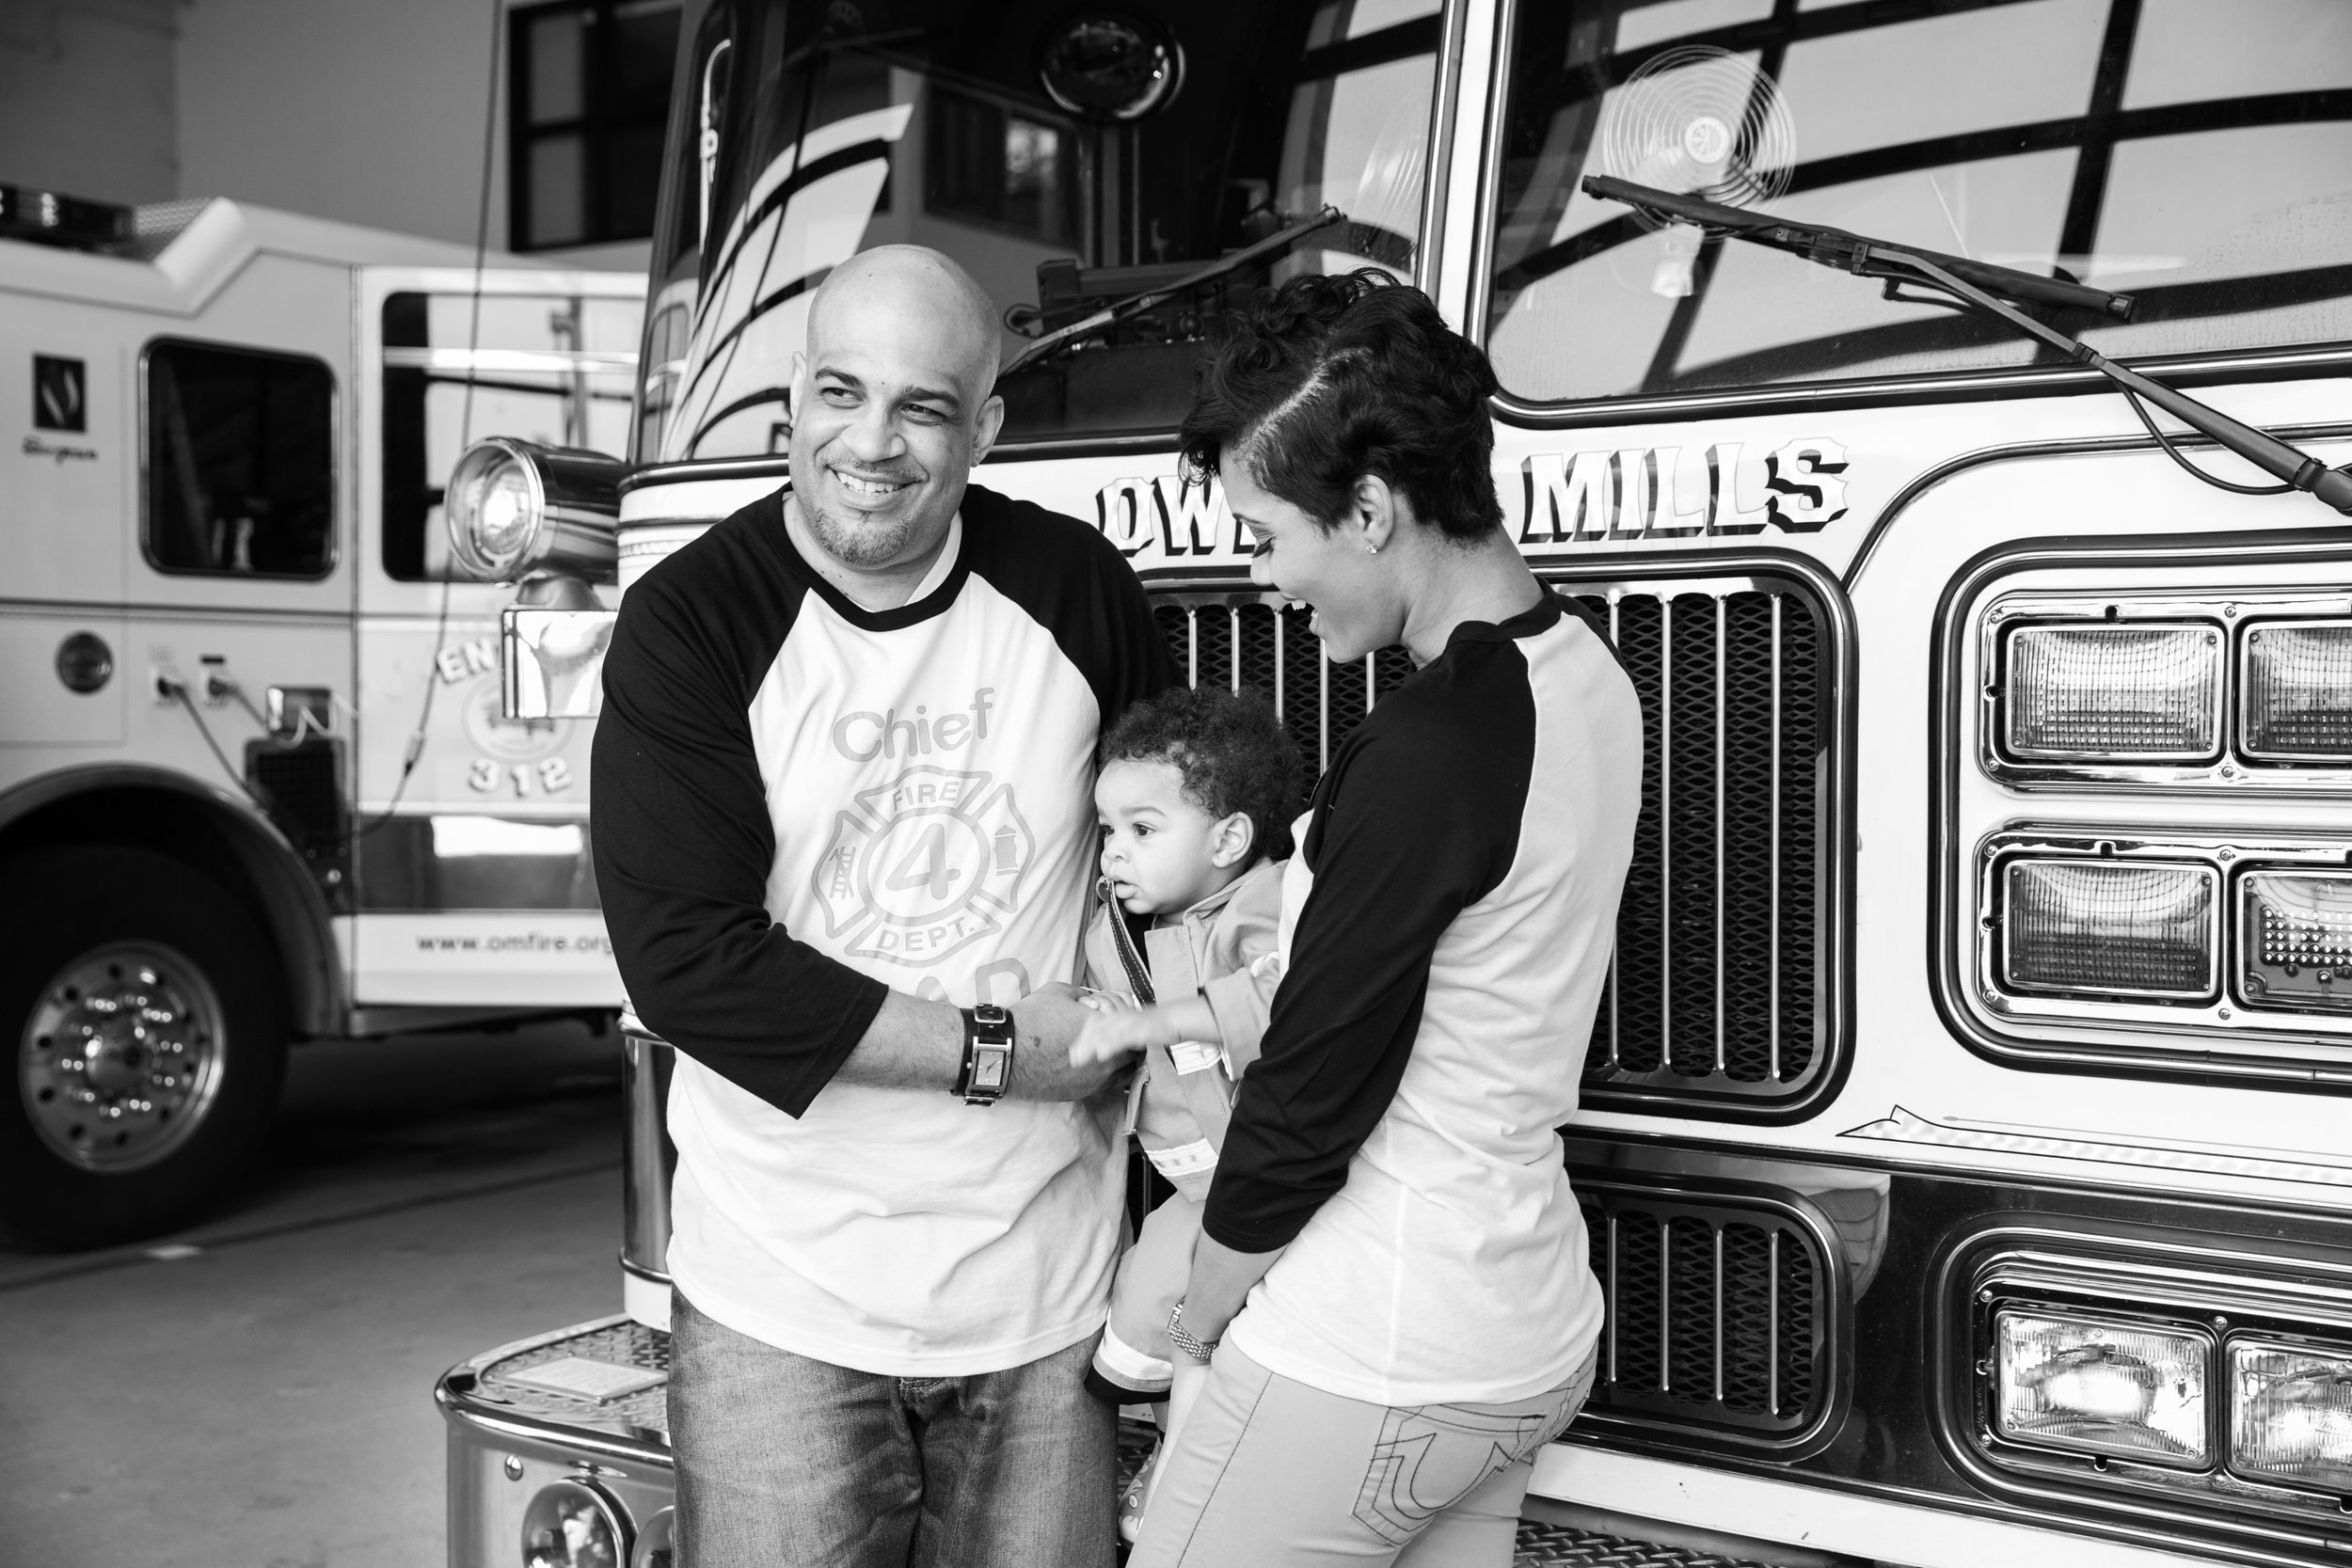 Fireman Birthday Party Ideas  Decorations Owings Mills Fire Department Maryland Family Photographers Megapixels Media Photography (16 of 55).jpg